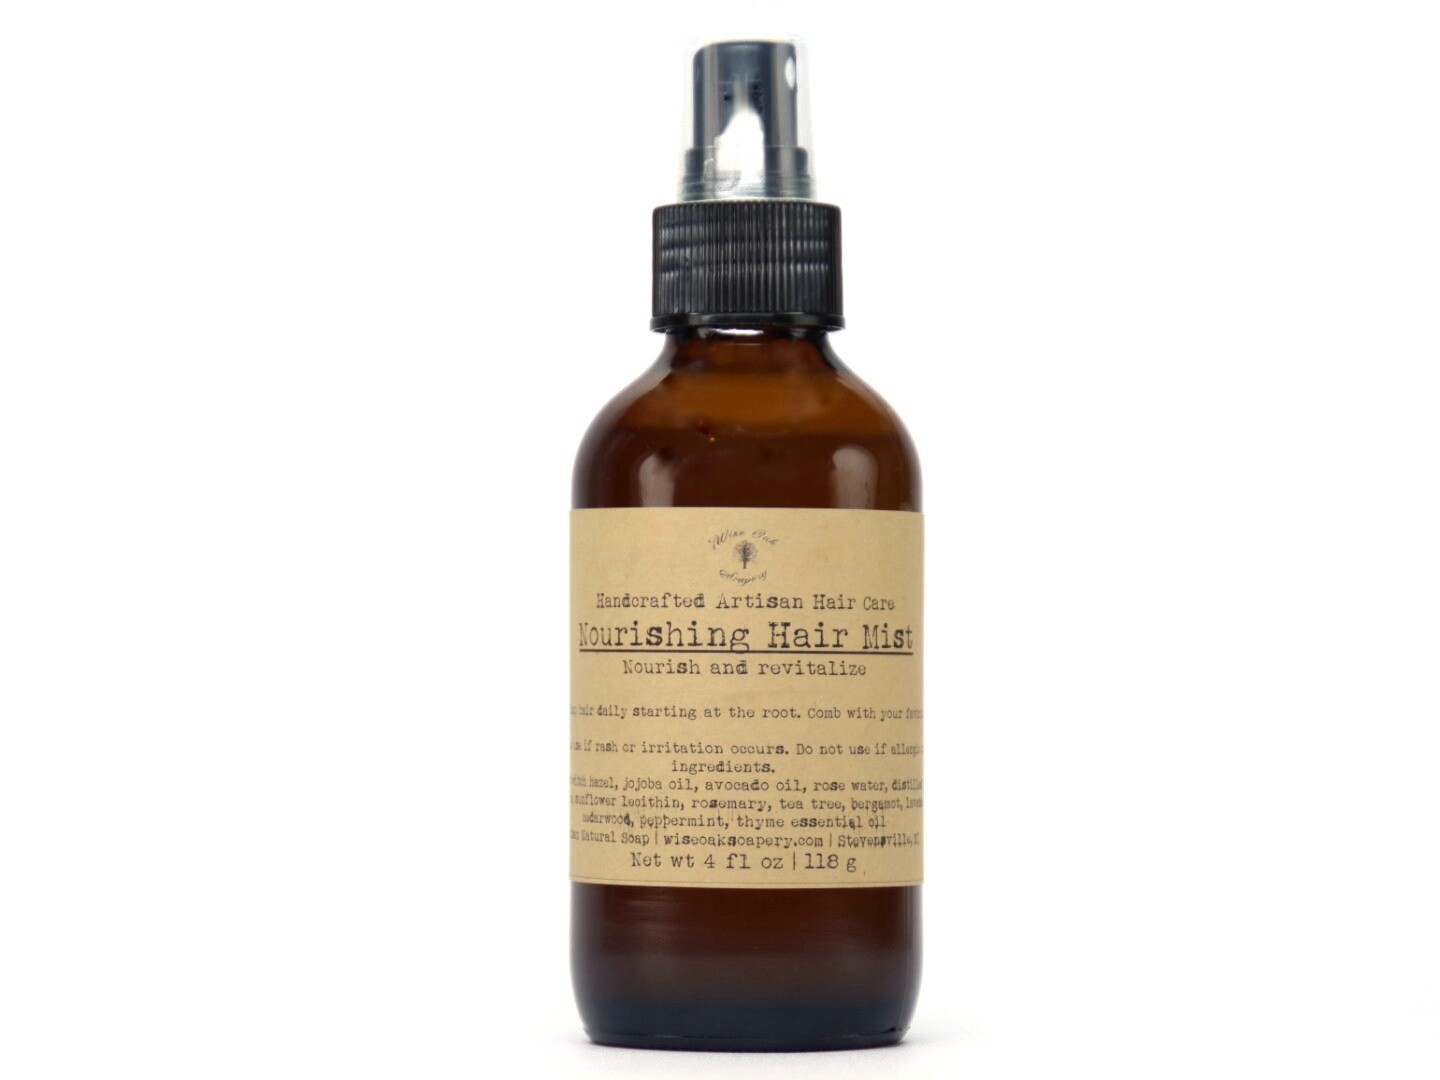 Nourishing Hair Mist for Dry, Over processed or Curly Hair